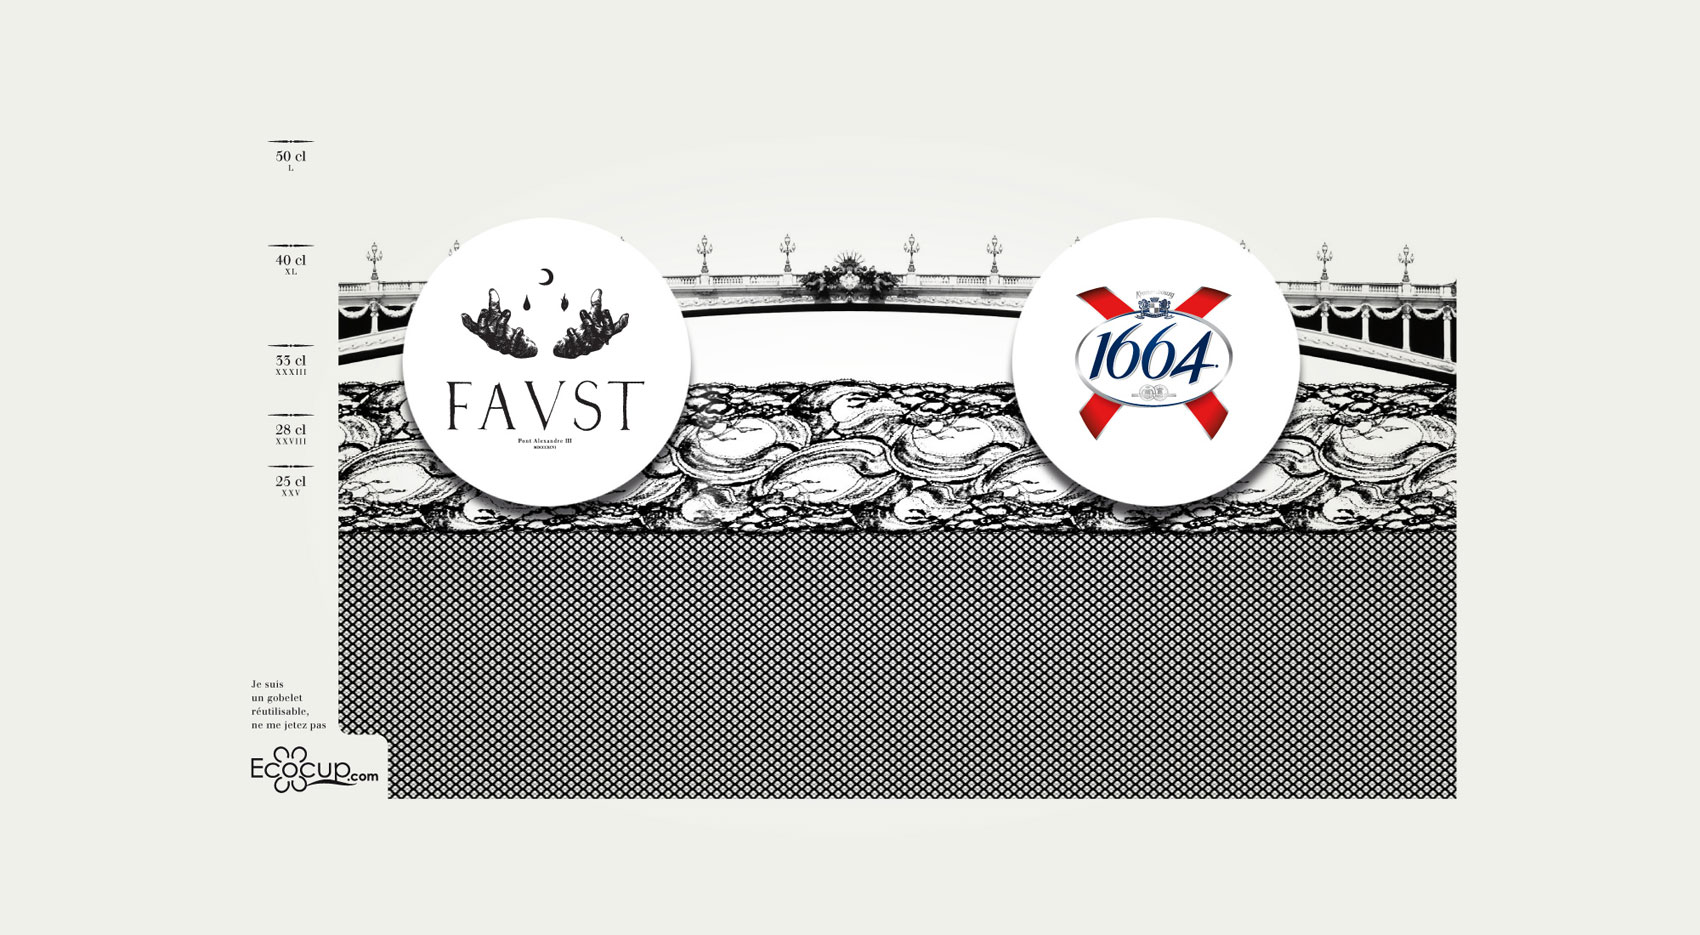 ecocup-1664-faust-2